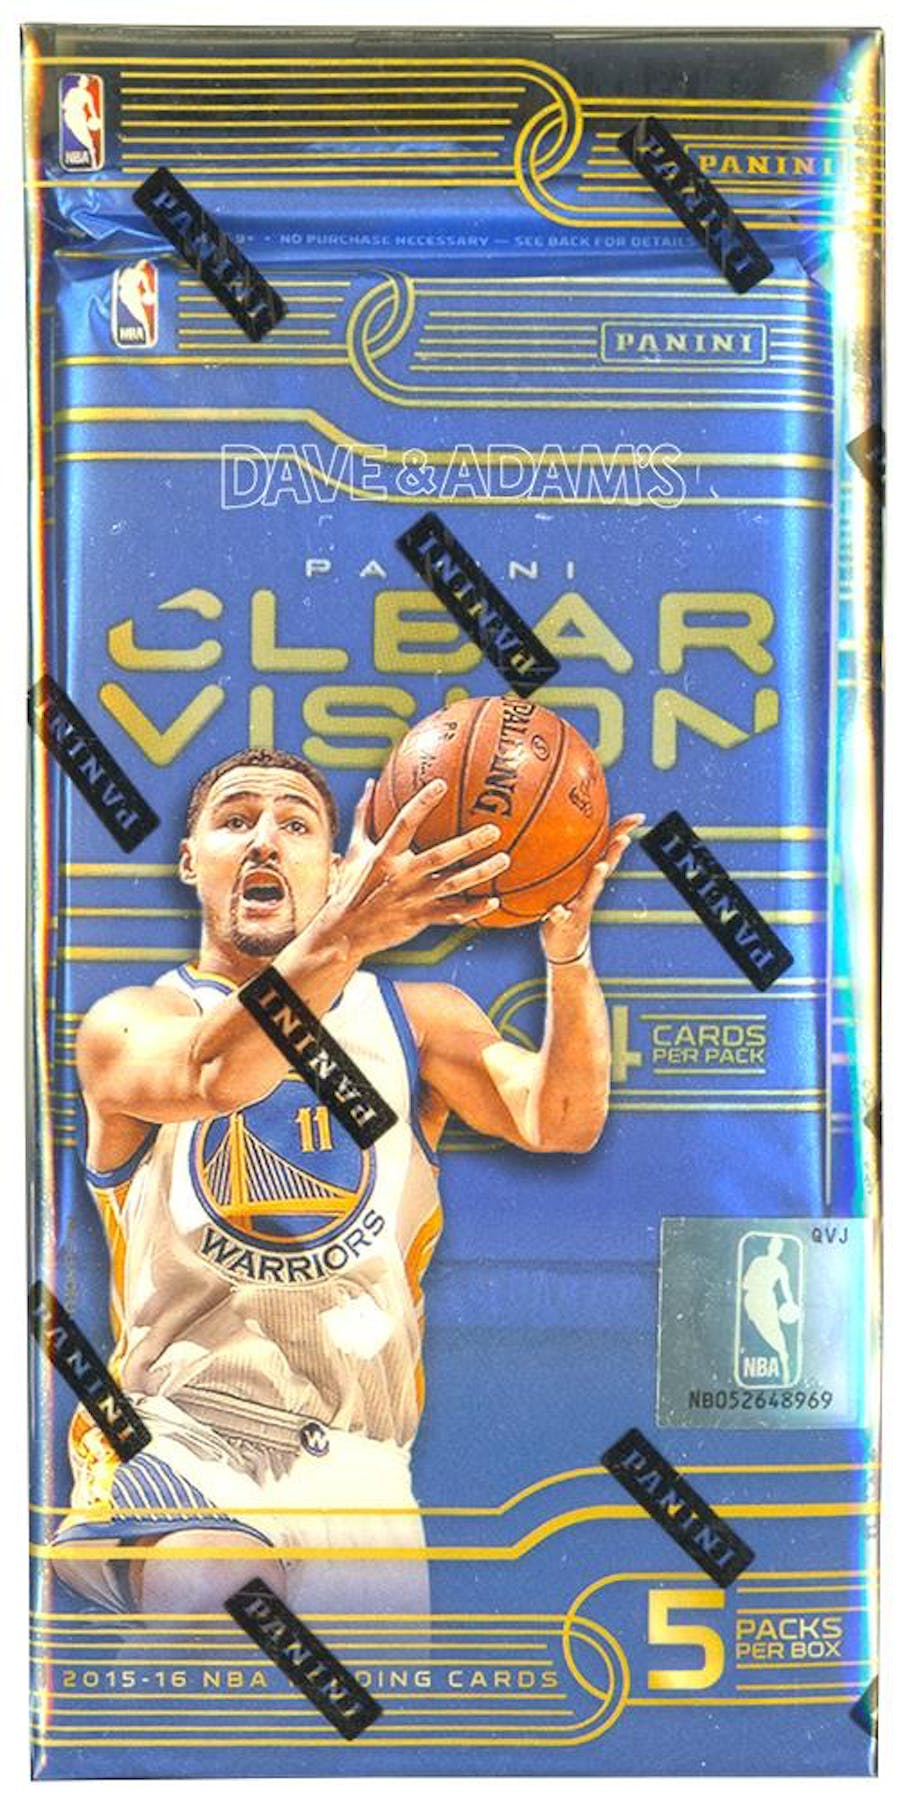 67afc4ebe02 2015 16 Panini Clear Vision Basketball Hobby Box